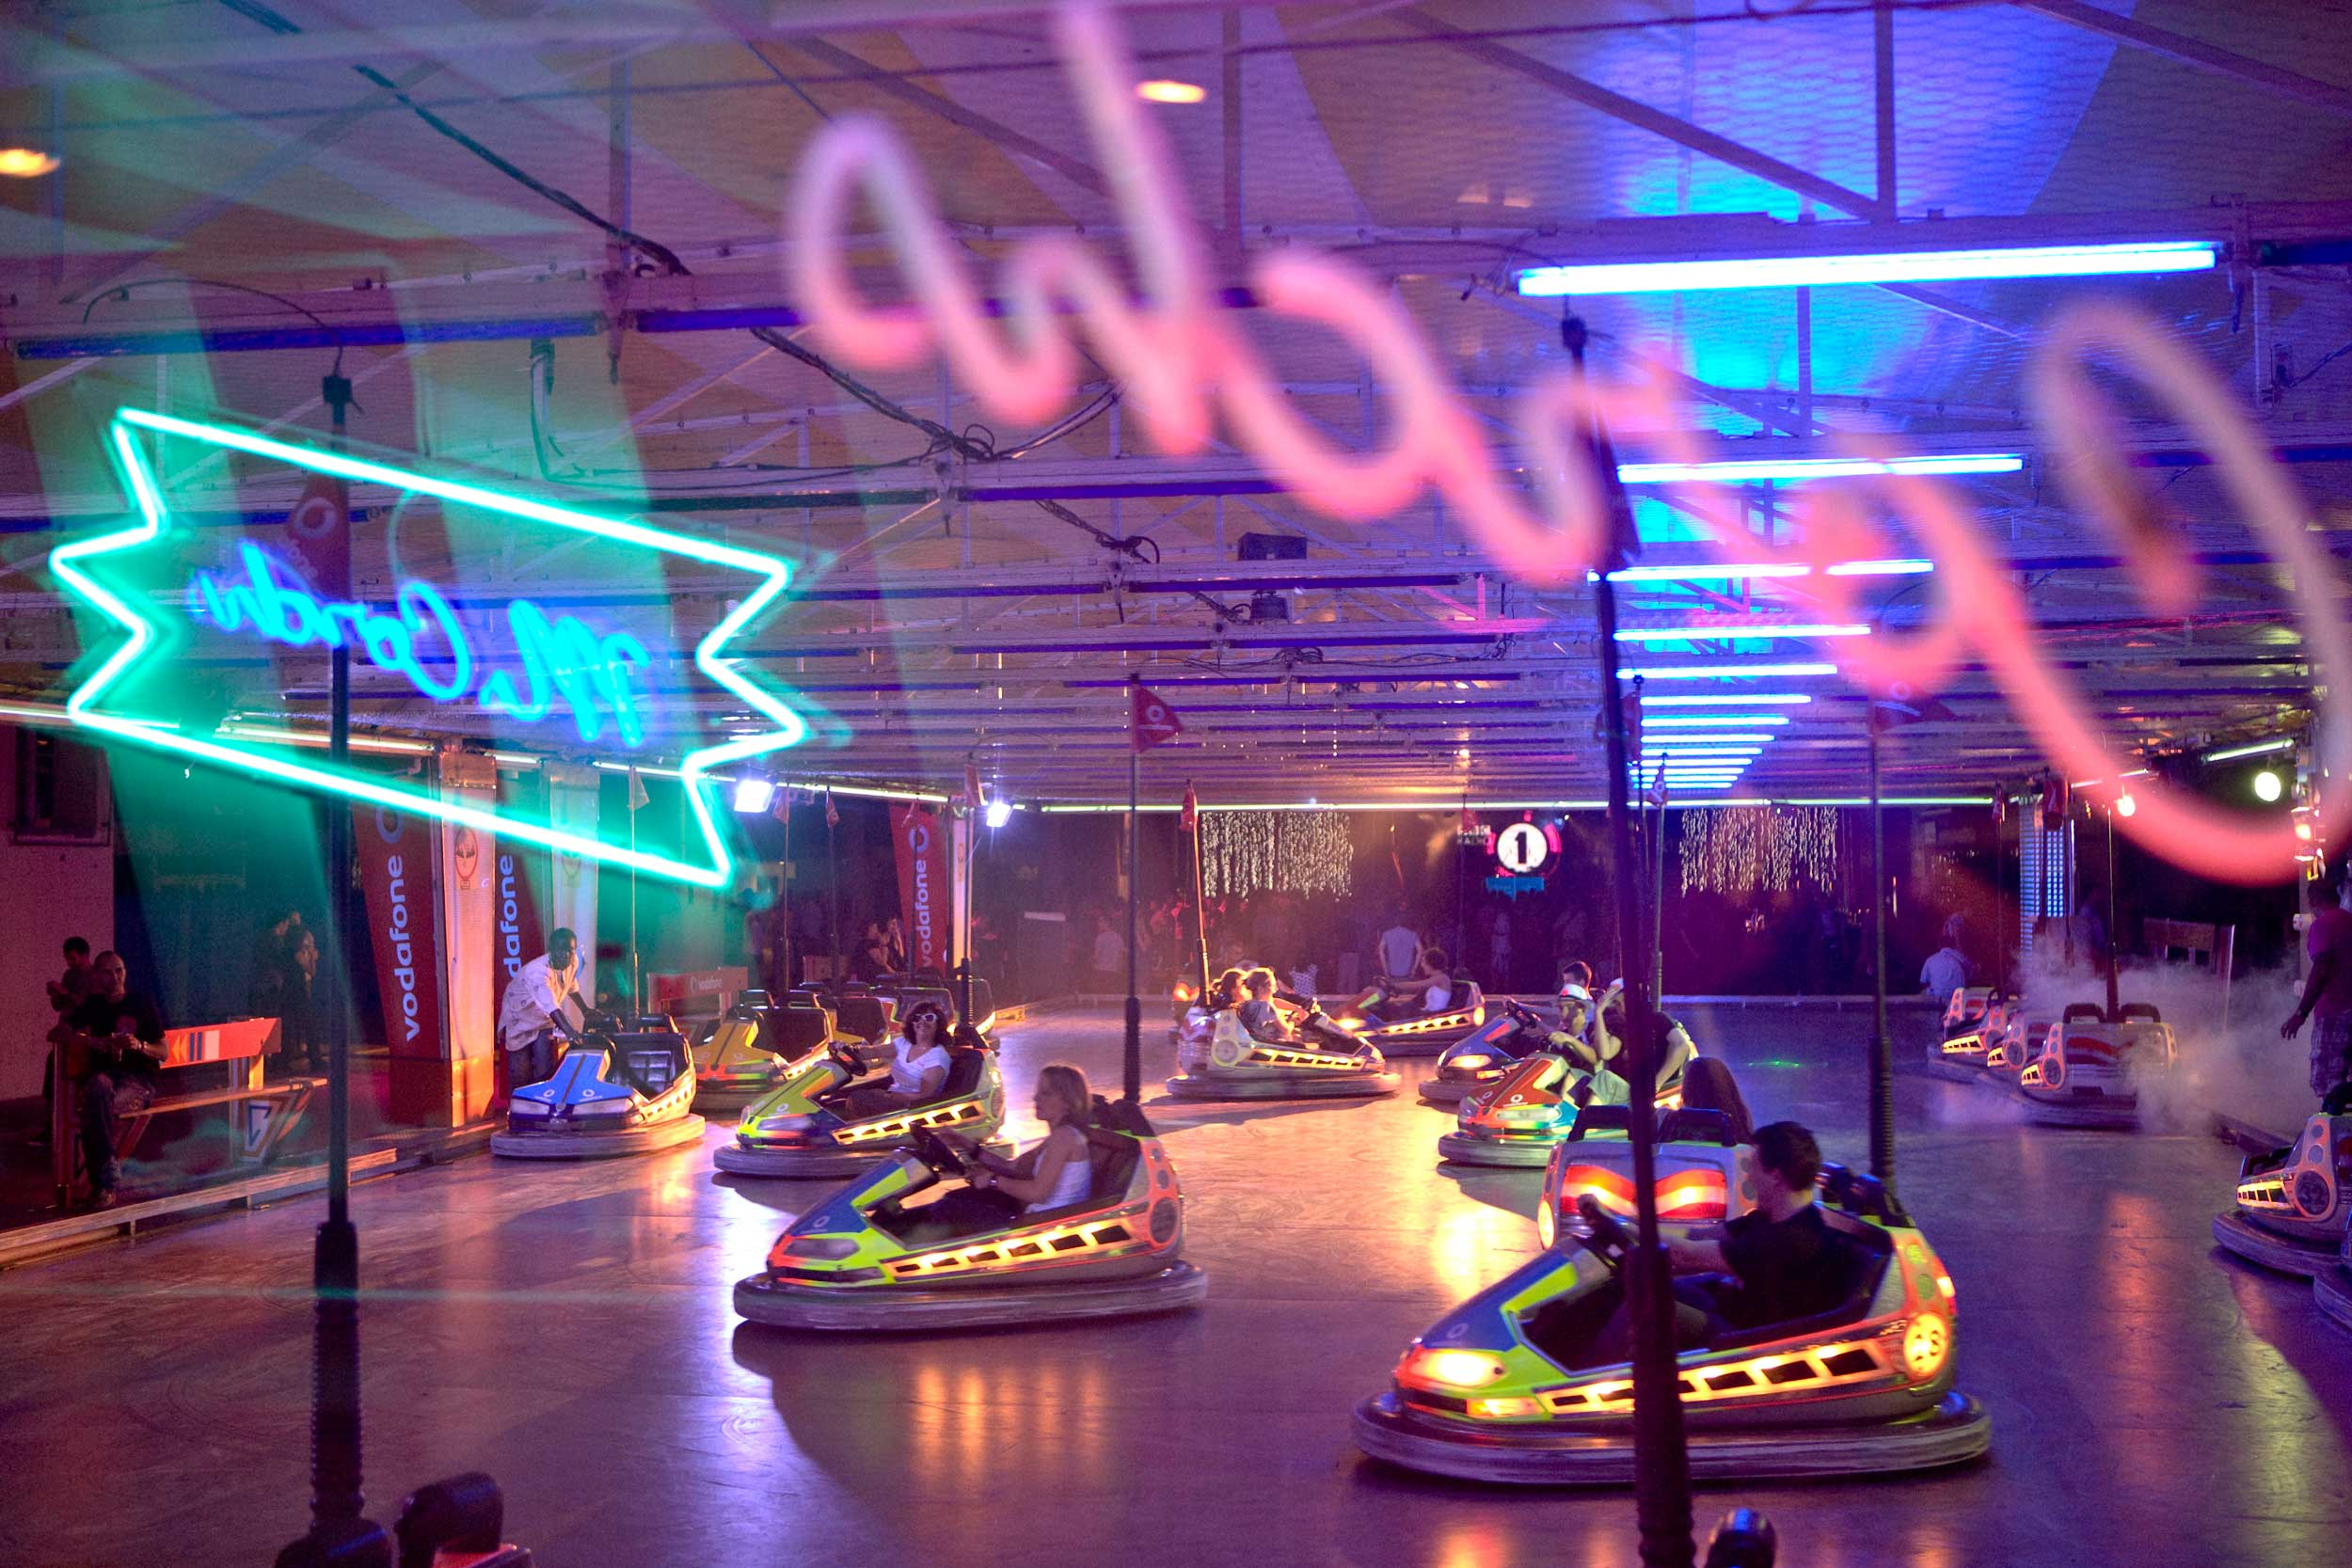 People enjoying bumper cars at Sonar, Barcelona